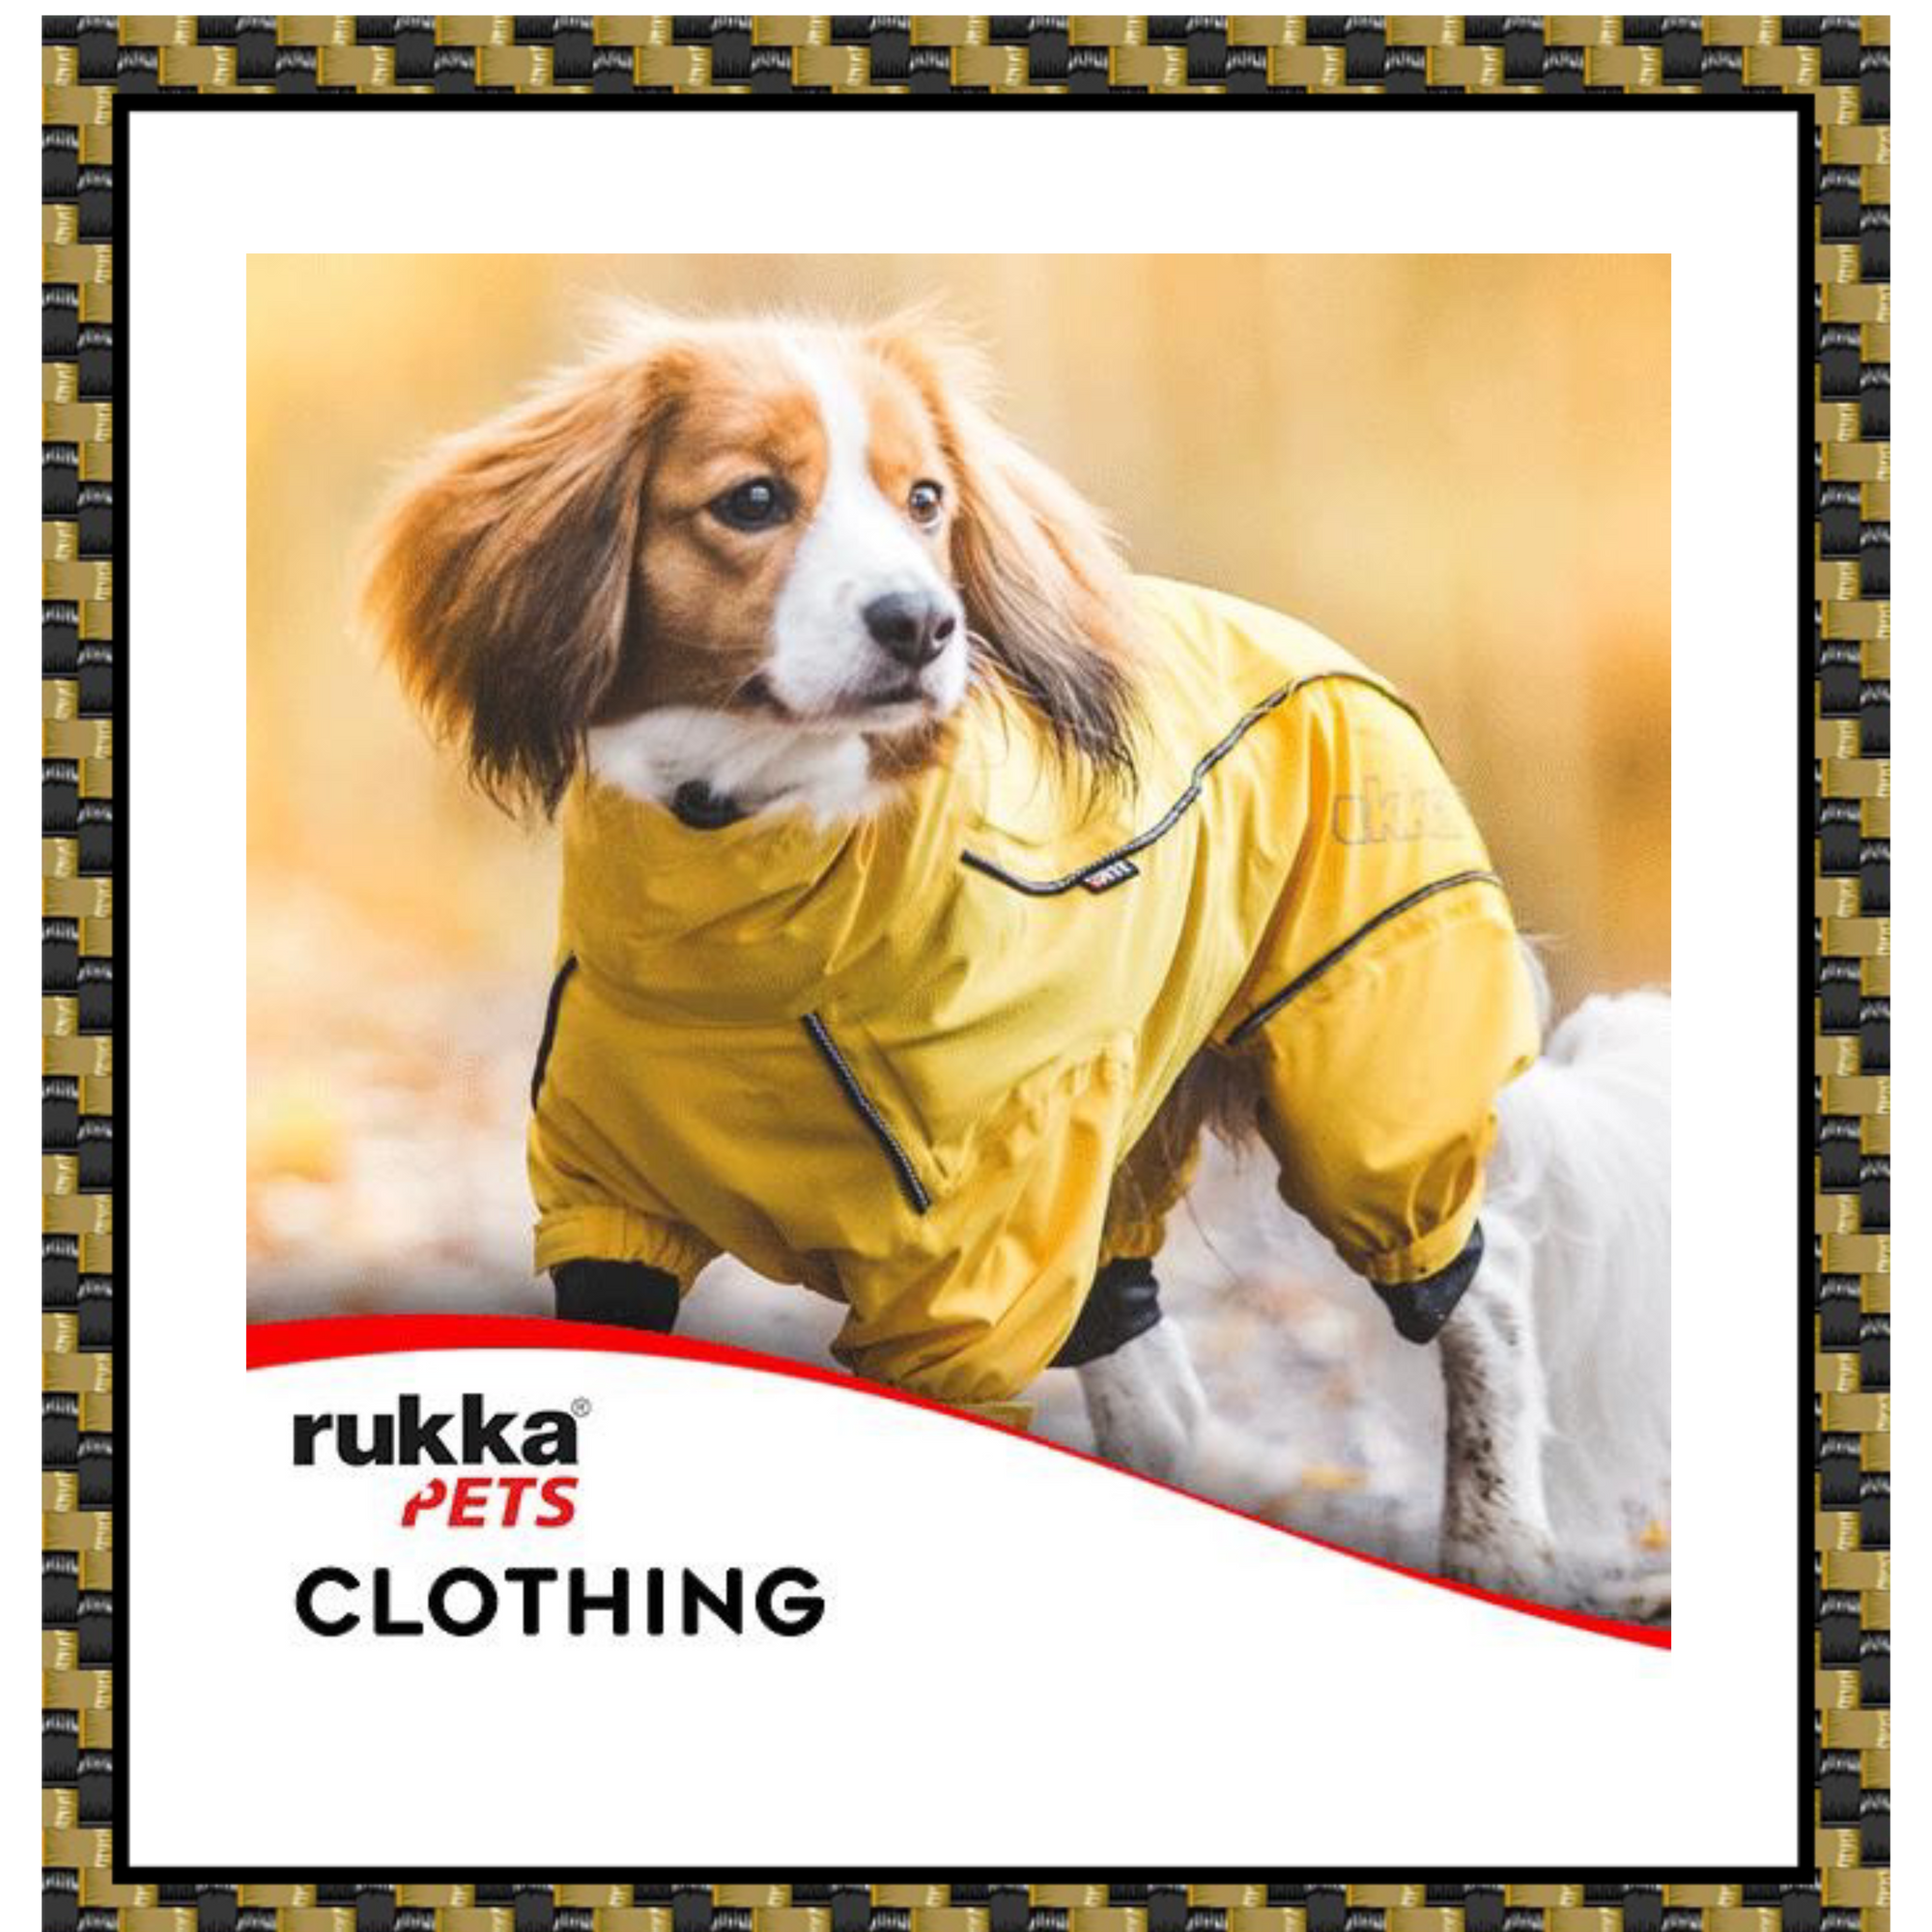 Rukka Pets Clothing